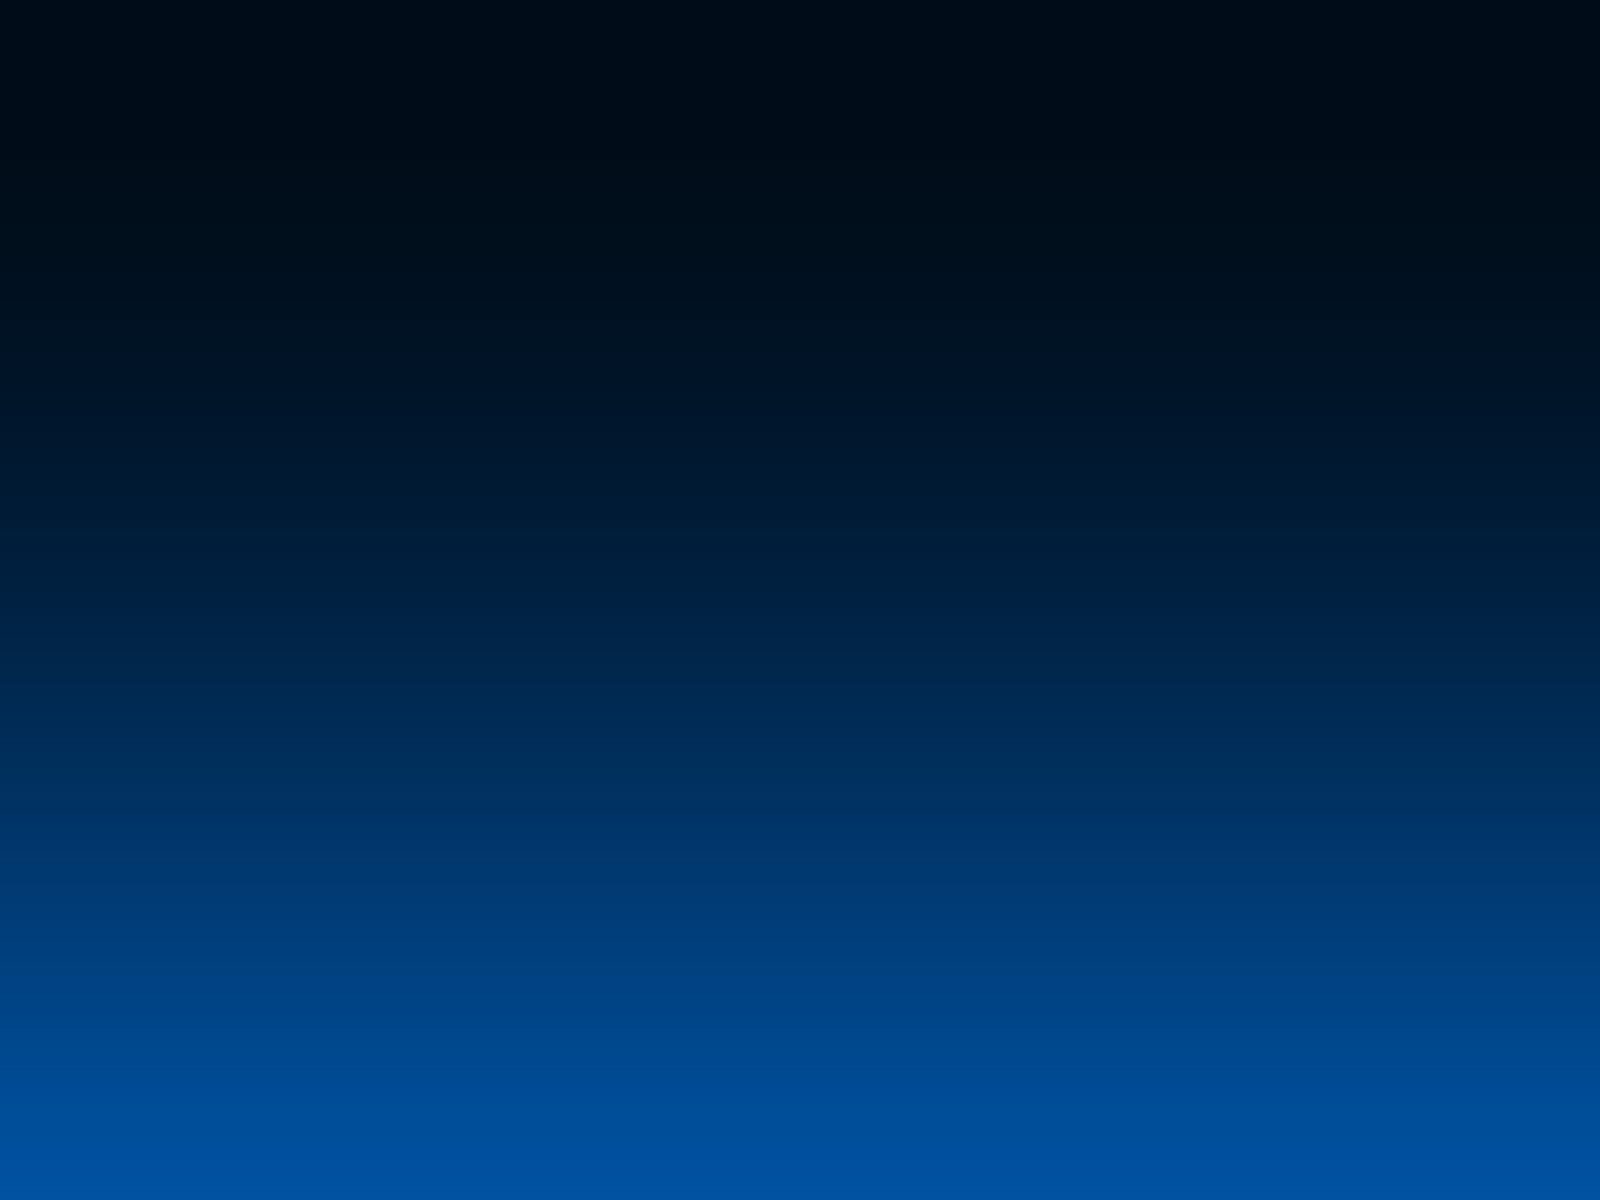 Blue Gradient Background   wallpaper 1600x1200